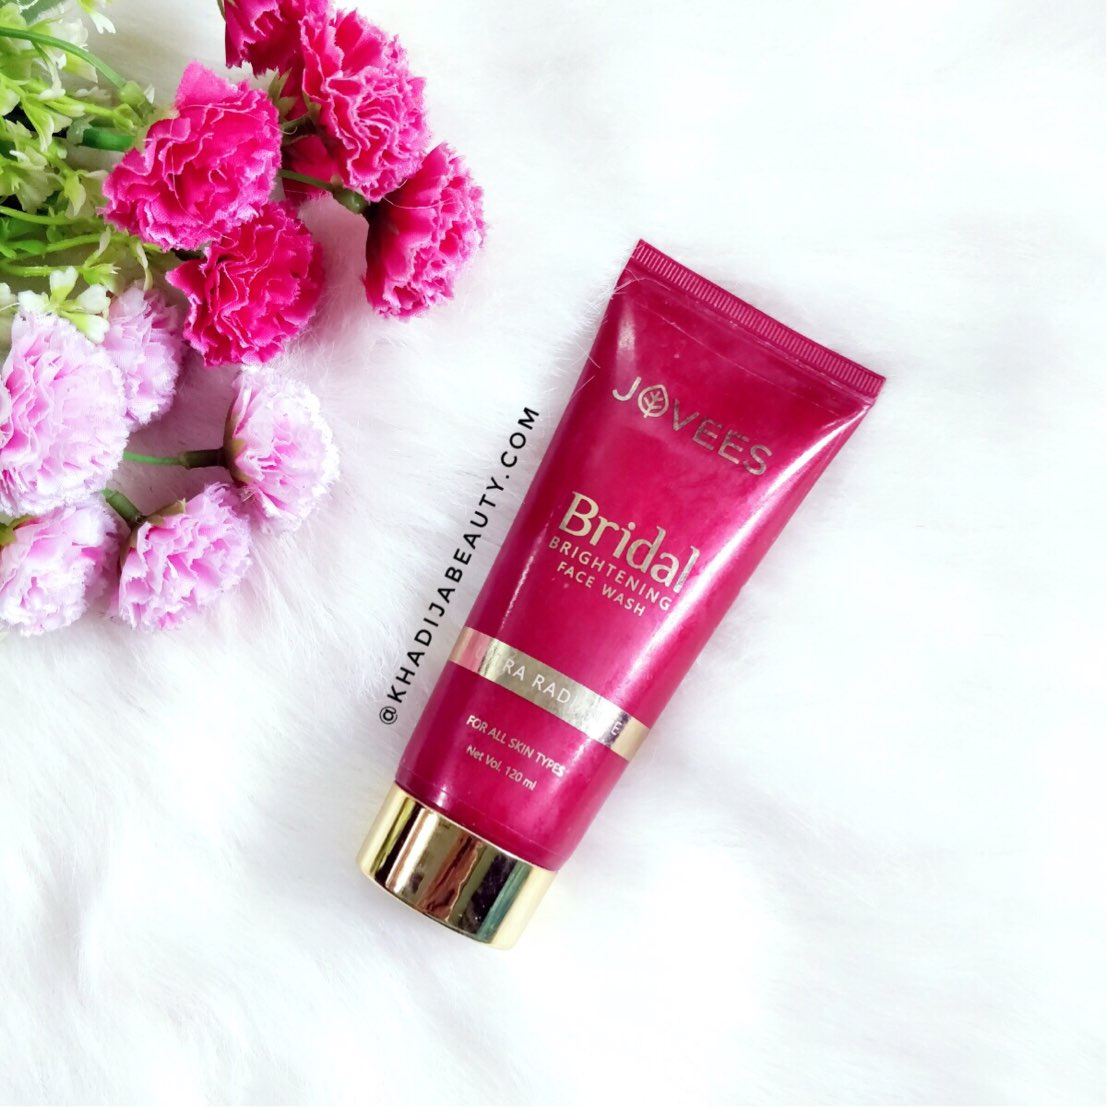 Jovees bridal brightening face wash Review